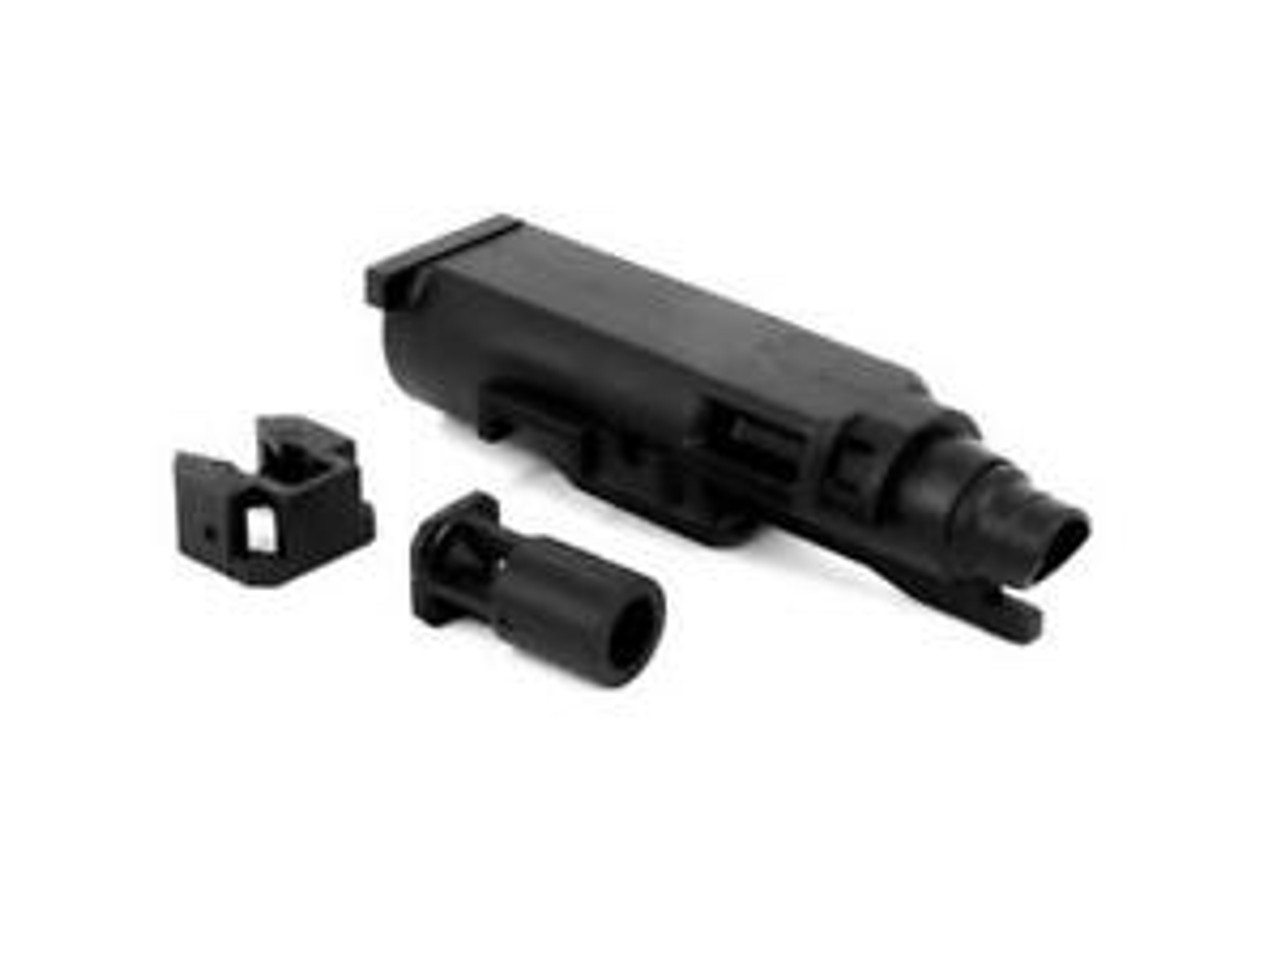 Guns Modify Enhanced Material & Structure Nozzle Set for TM/GM G18C / G17 RMR Ver2 HPA/CO2 Ready